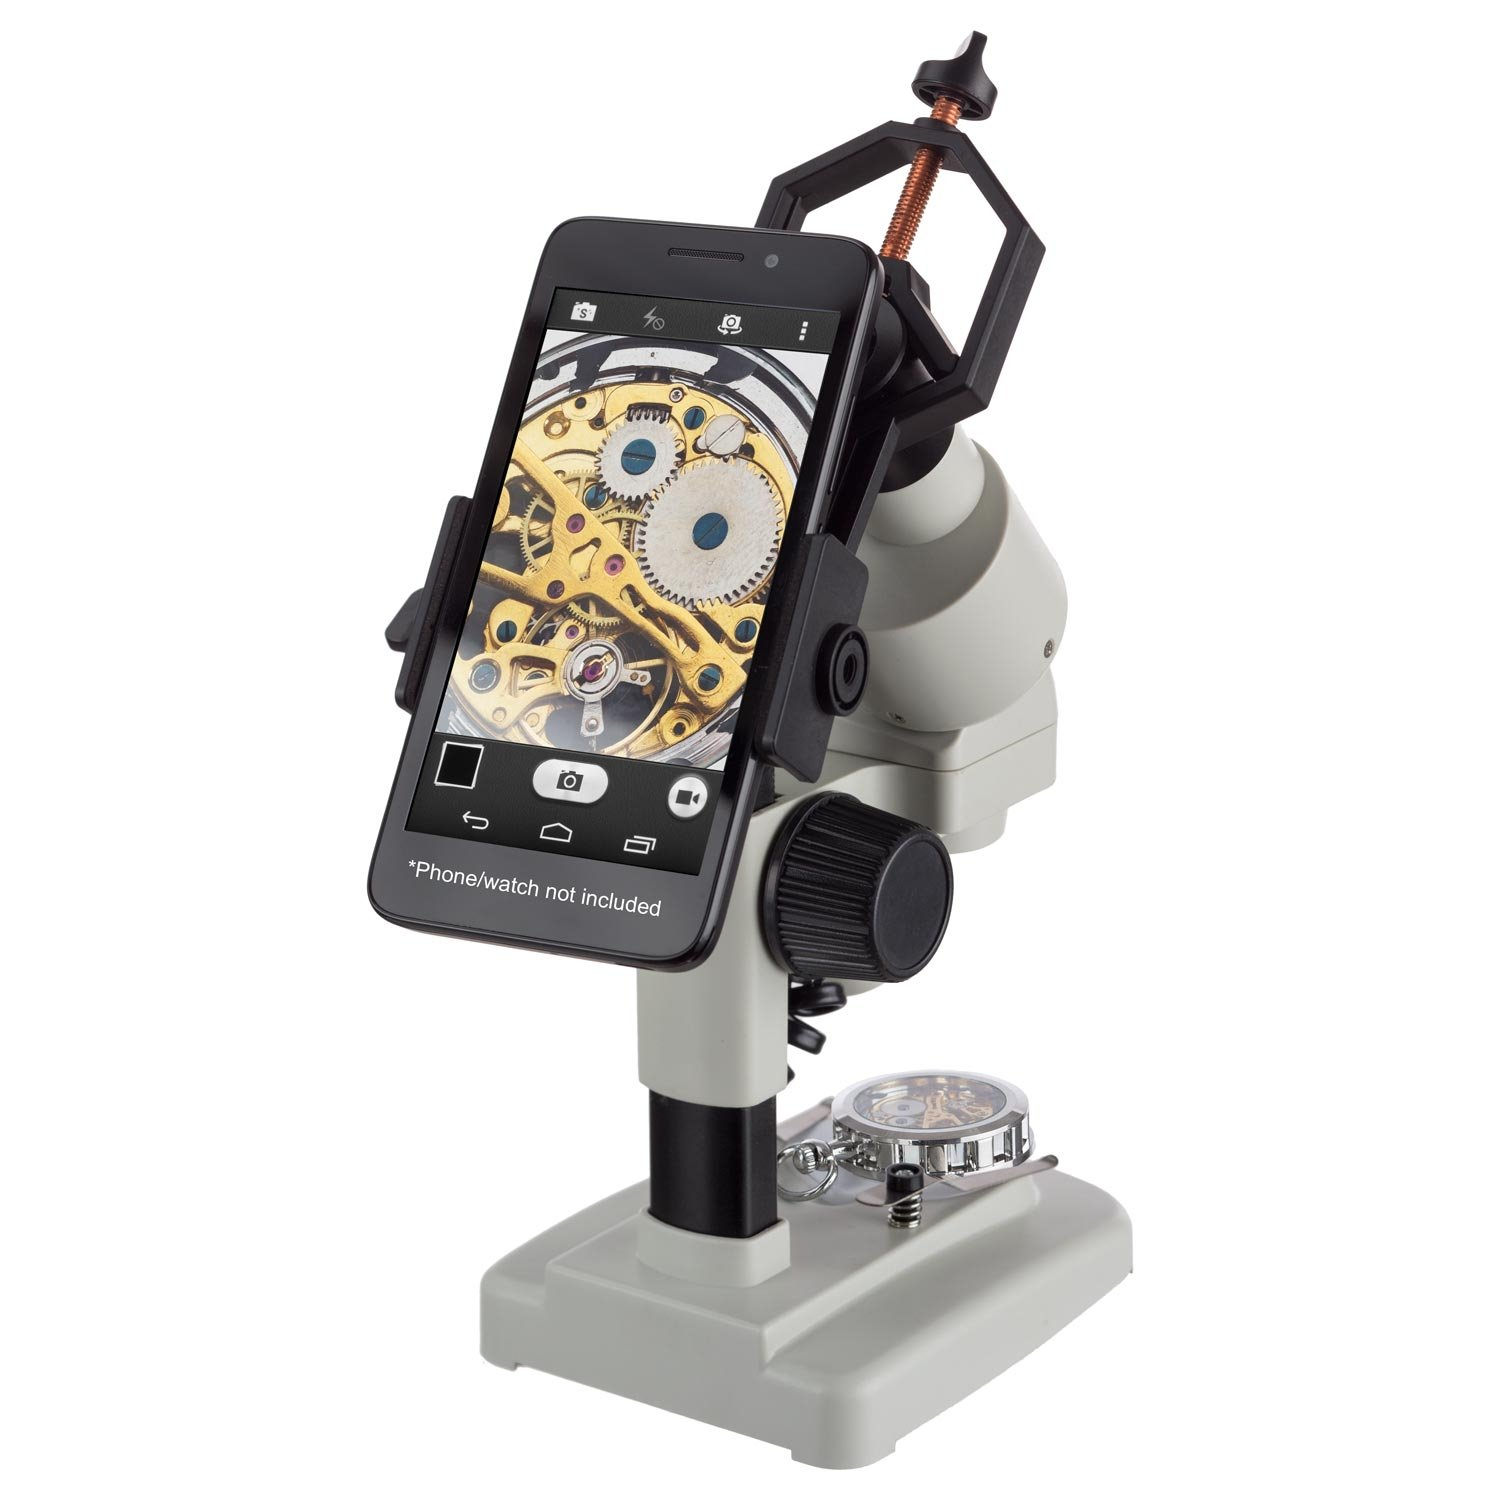 AMSCOPE-KIDS 20X 40X Cordless LED Portable Stereo Microscope with Smartphone Holder